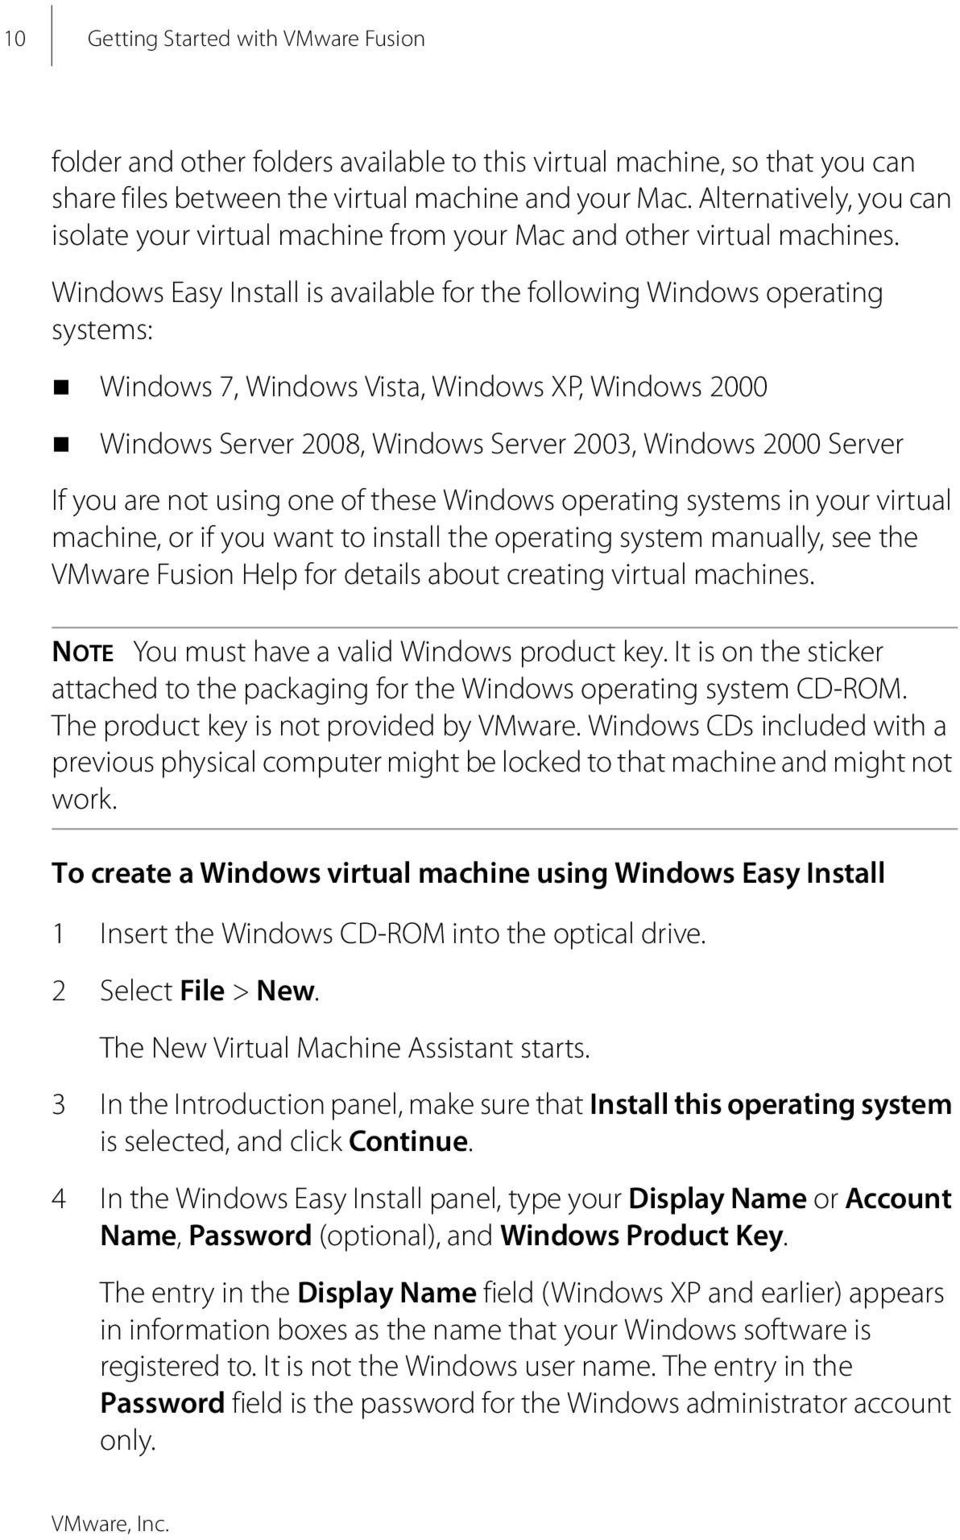 Windows Easy Install is available for the following Windows operating systems: Windows 7, Windows Vista, Windows XP, Windows 2000 Windows Server 2008, Windows Server 2003, Windows 2000 Server If you